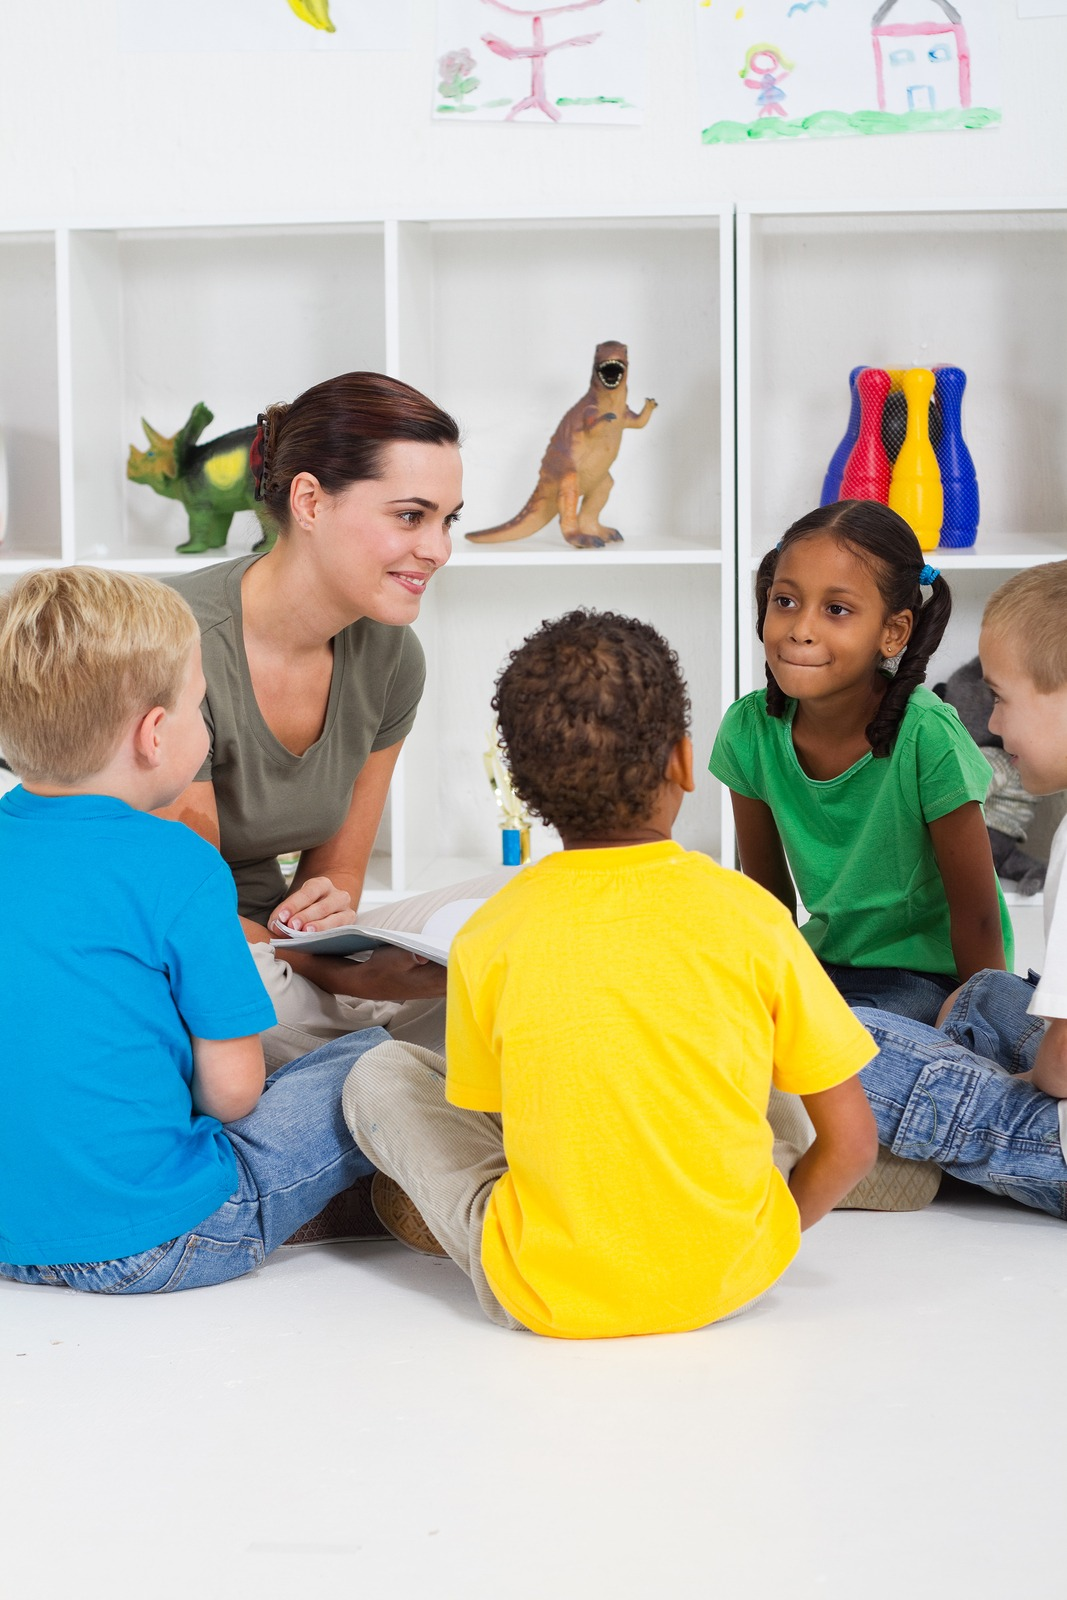 Moving Beyond Storytime: Rethinking Preschool and Daycare Outreach